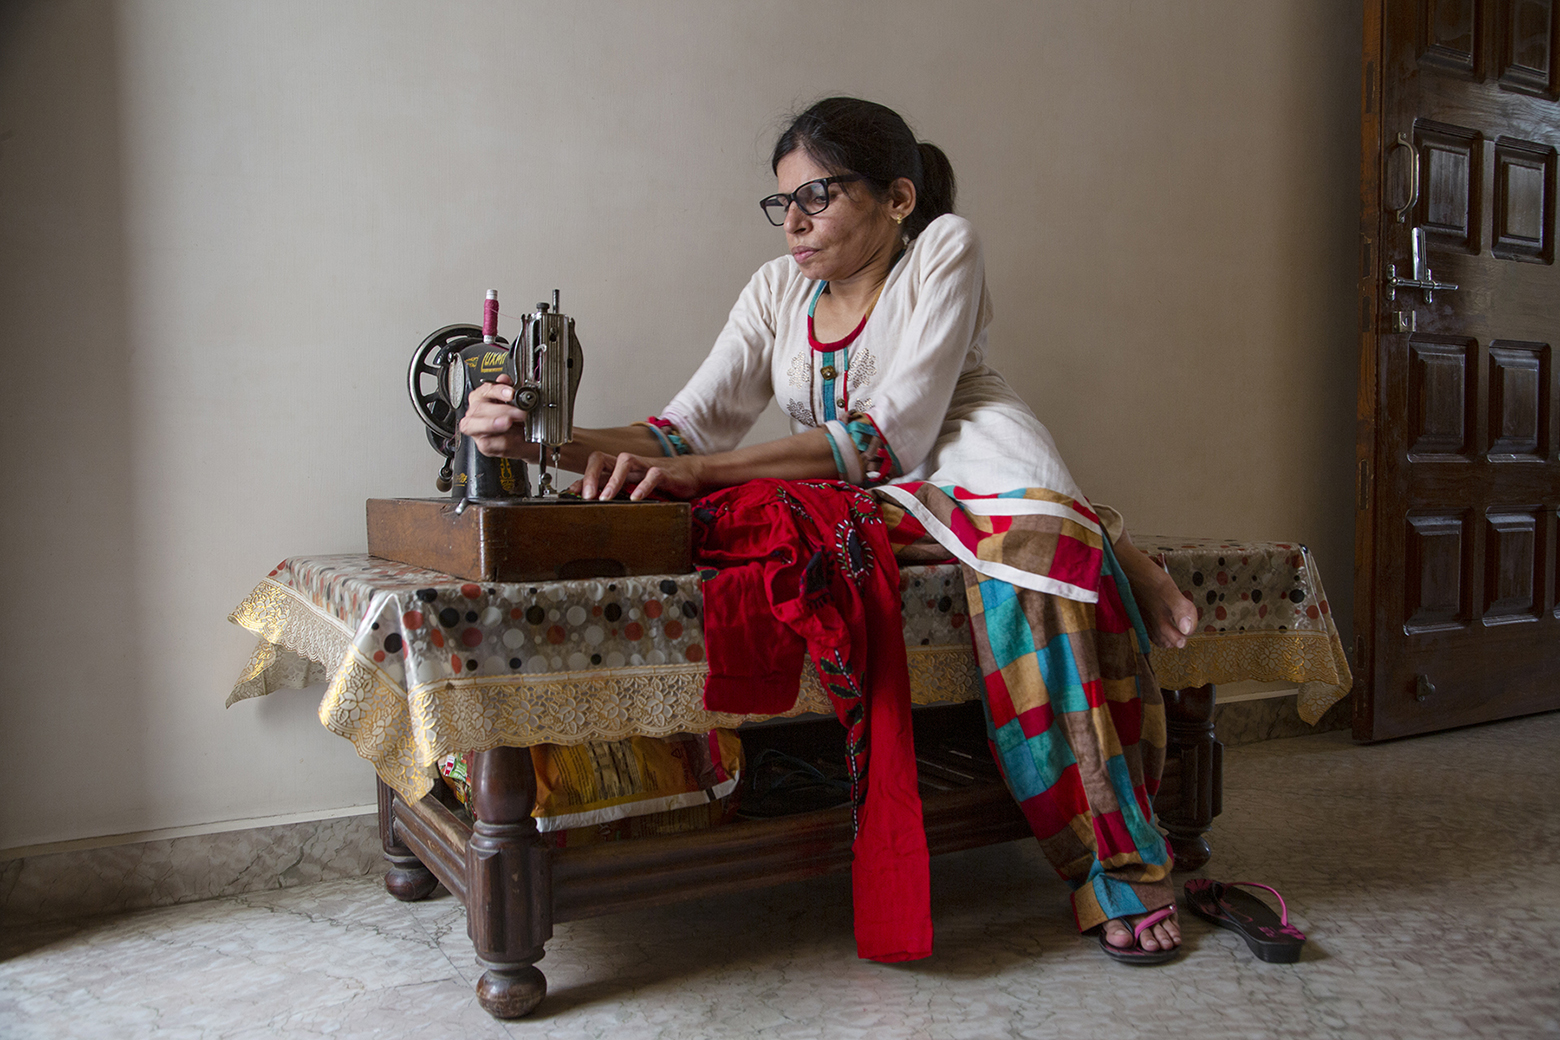 Kavita Mathur is stitching a red kurta on an old-fashioned tabletop sewing machine. The machine is placed on a low, sturdy wooden table. Kavita has specs with thick black frames. Wearing a cream kameez and a salwar in a design of red, blue, mustard and brown checks, she is sitting on the table with right leg folded and left leg touching the ground. She is adjusting the machine with her right hand and placing the cloth beneath the needle with her left hand.